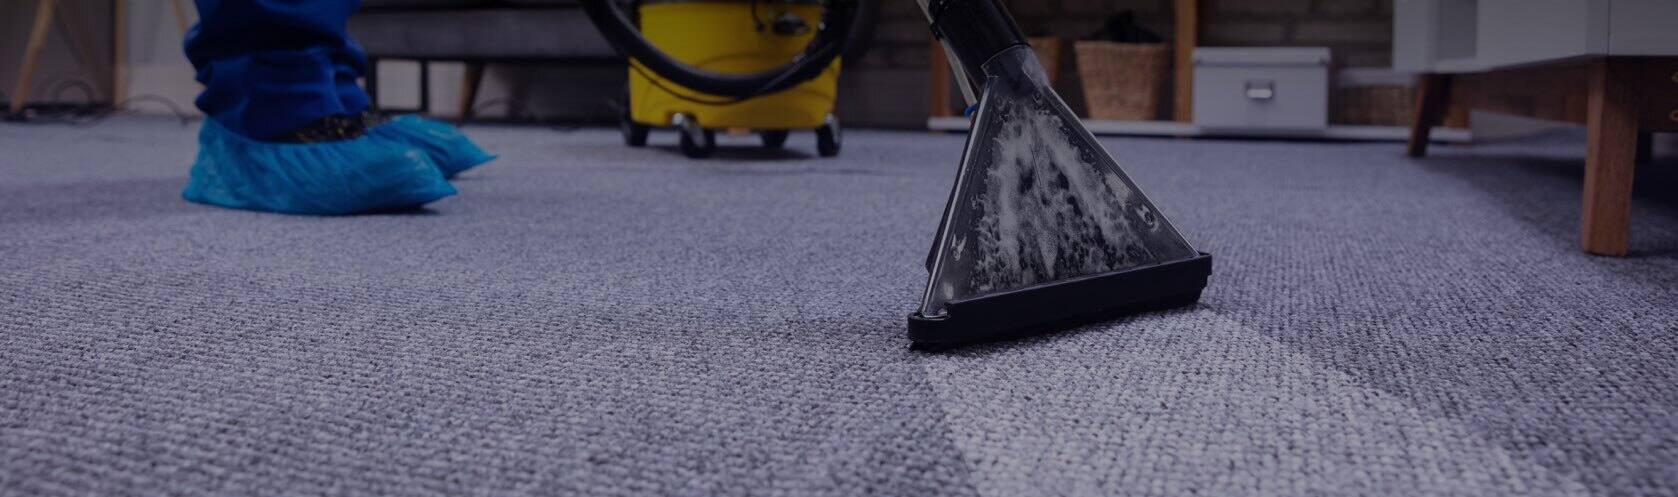 carpet cleaners in cleveland oh